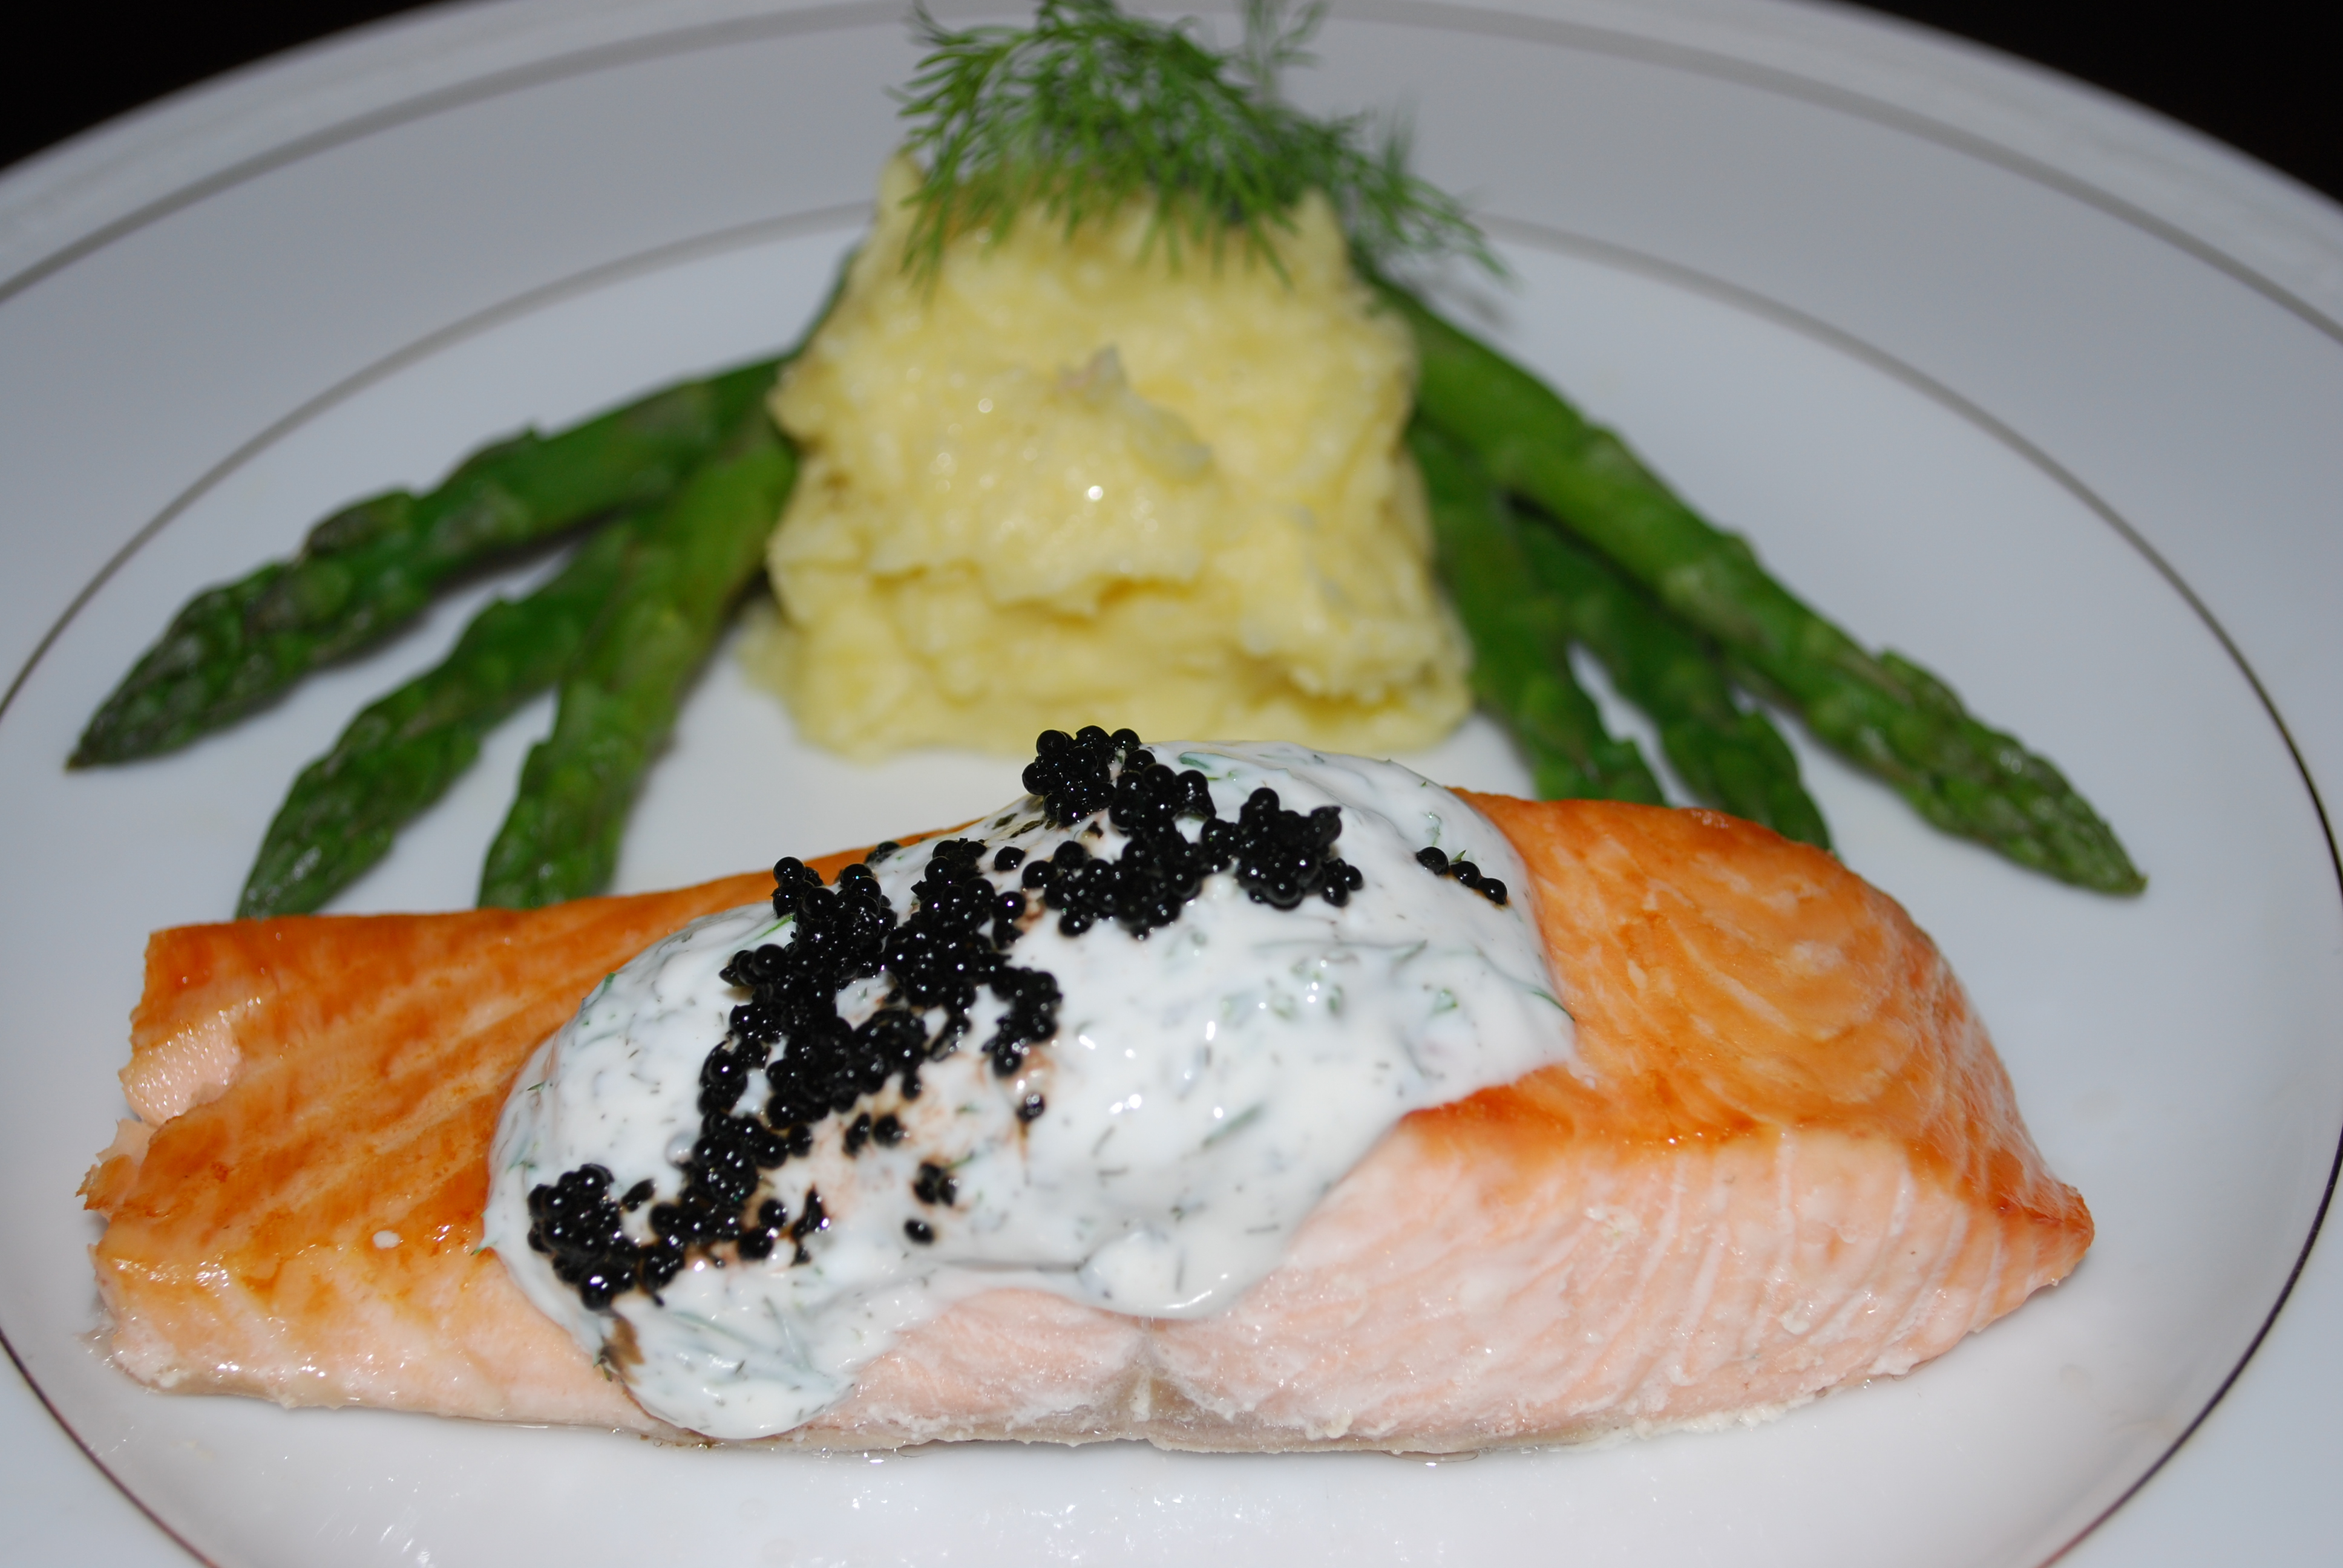 caviar christmas caviar sauce smoked salmon with caviar on